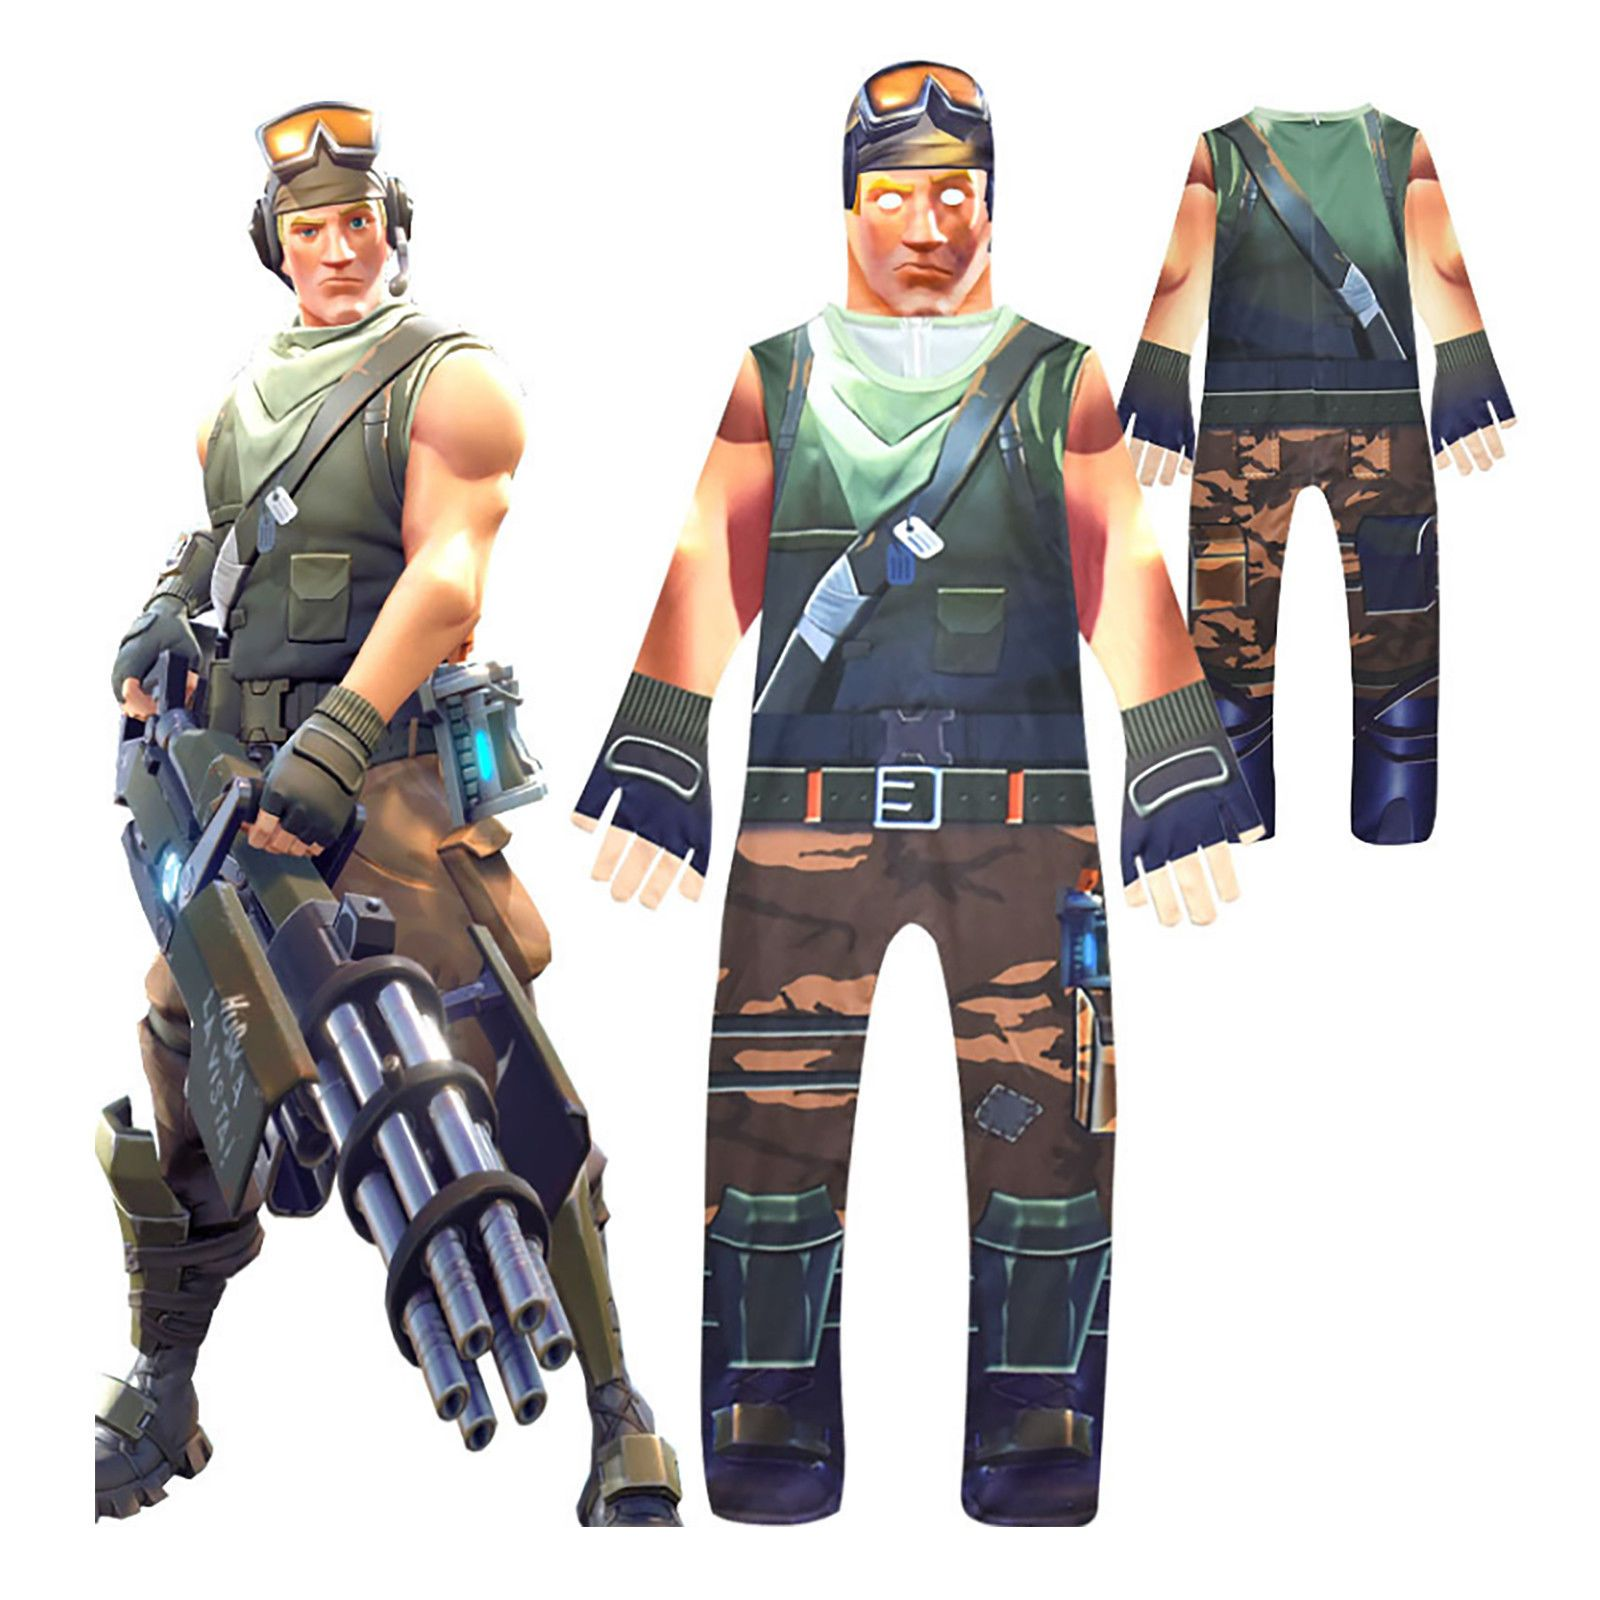 407a12d89dc Adults Kids Fortnite Costume Halloween Fancy Dress Cosplay Jumpsuit Prop  Outfits